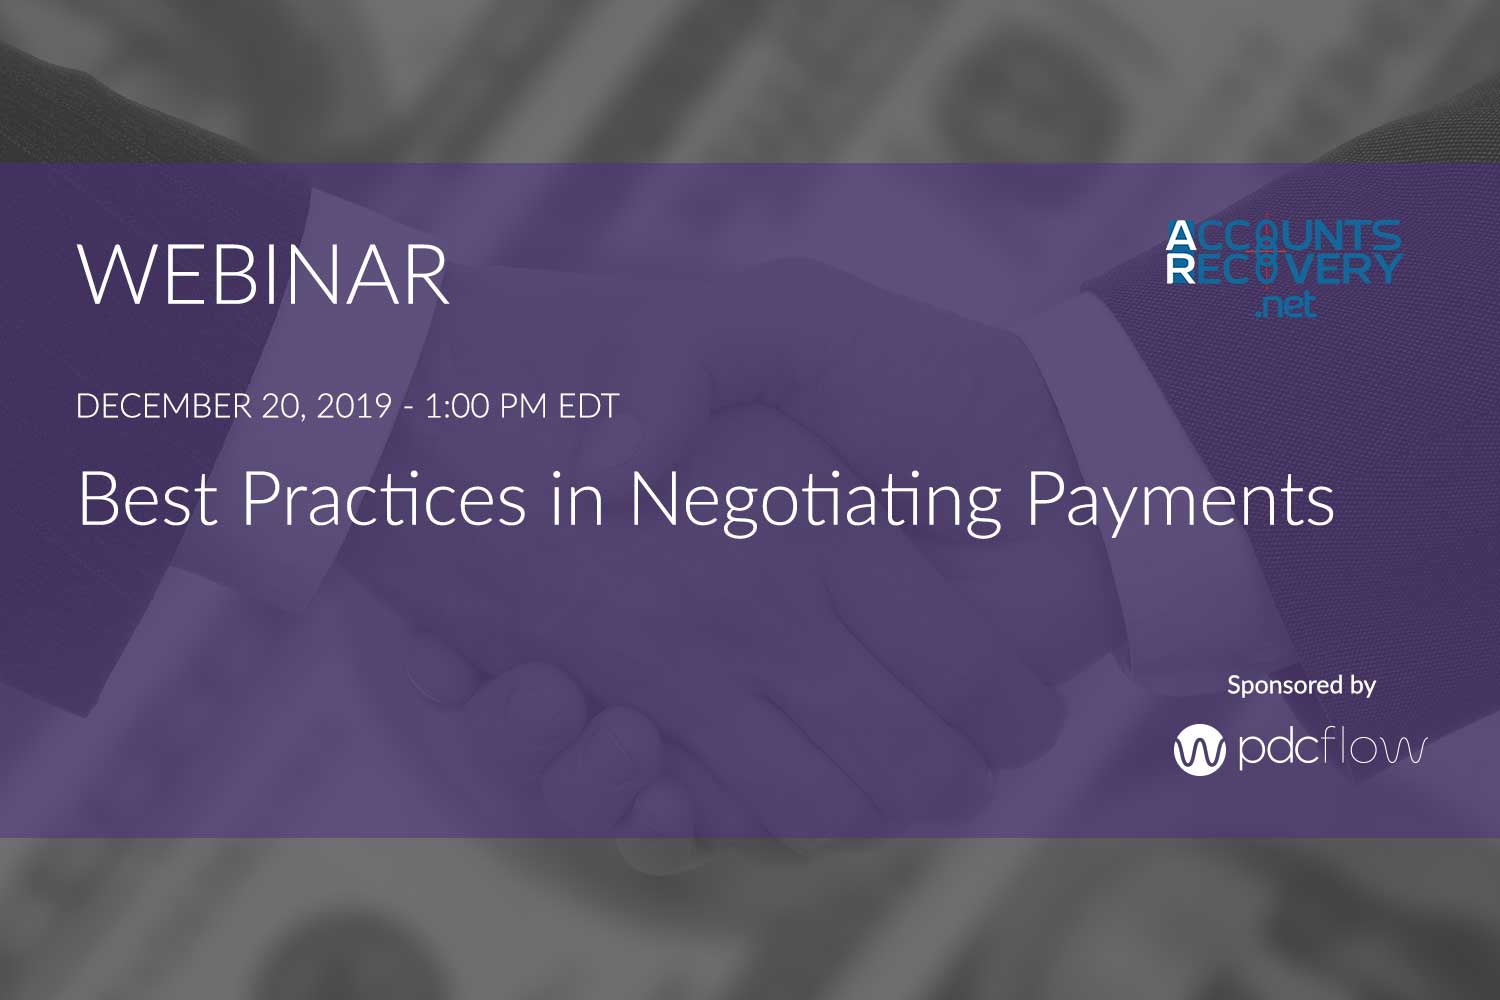 Best Practices in Negotiating Payments Webinar